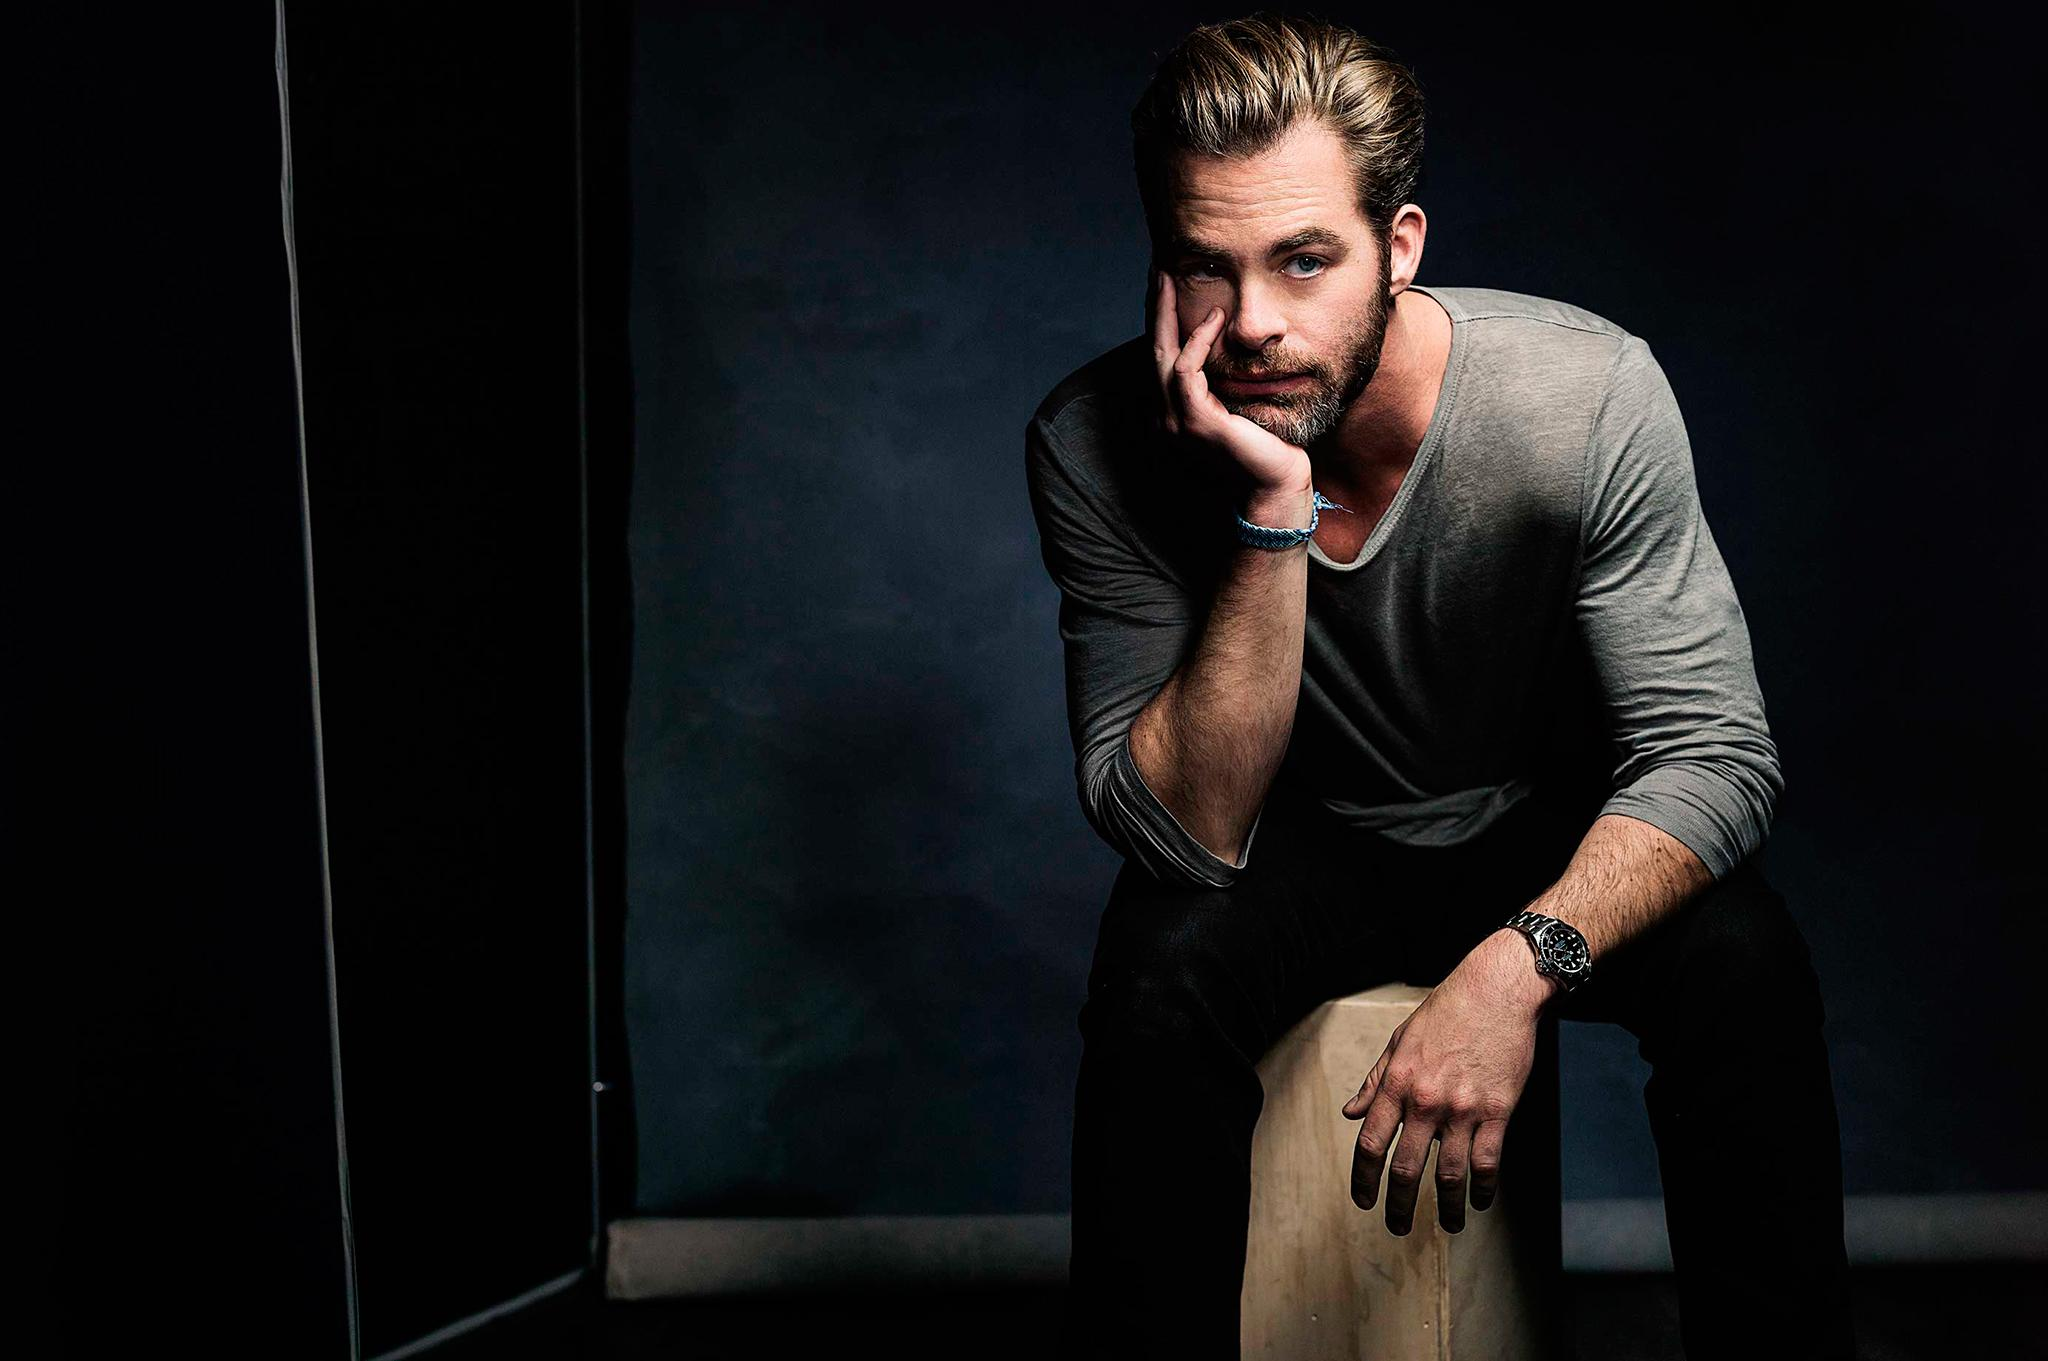 Chris Pine Wallpapers High Resolution and Quality Download